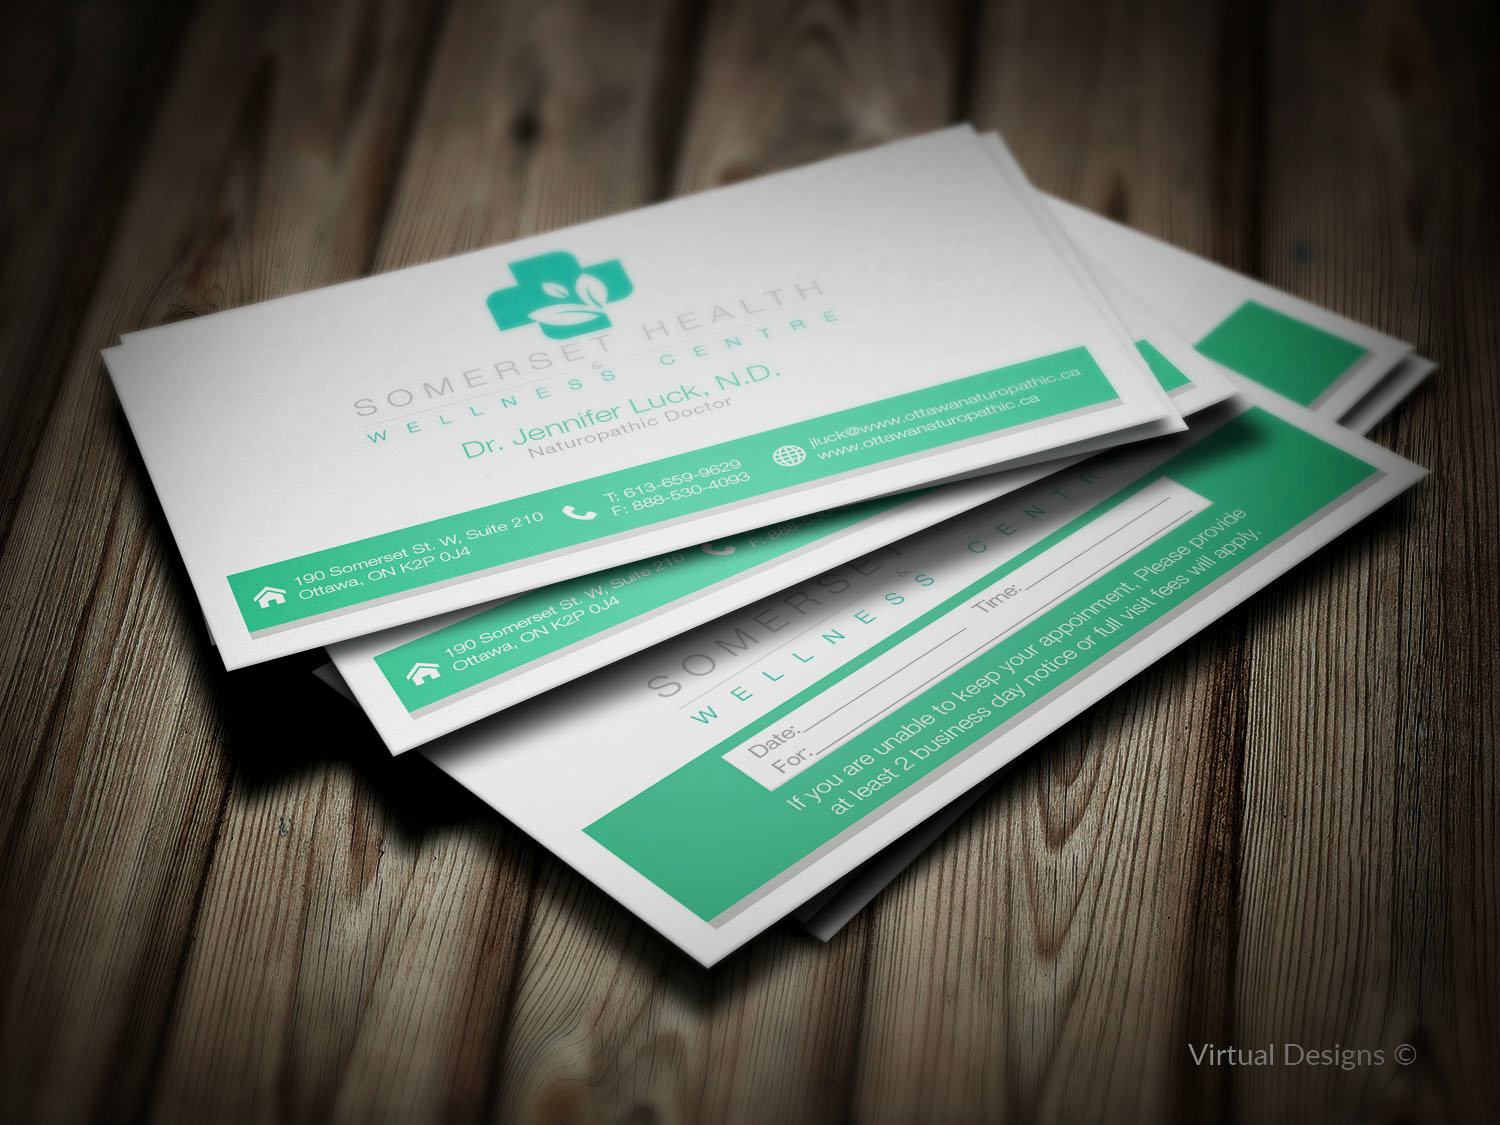 Serious upmarket health and wellness business card design for business card design by virtual designs for somerset health wellness centre design 11013415 reheart Choice Image